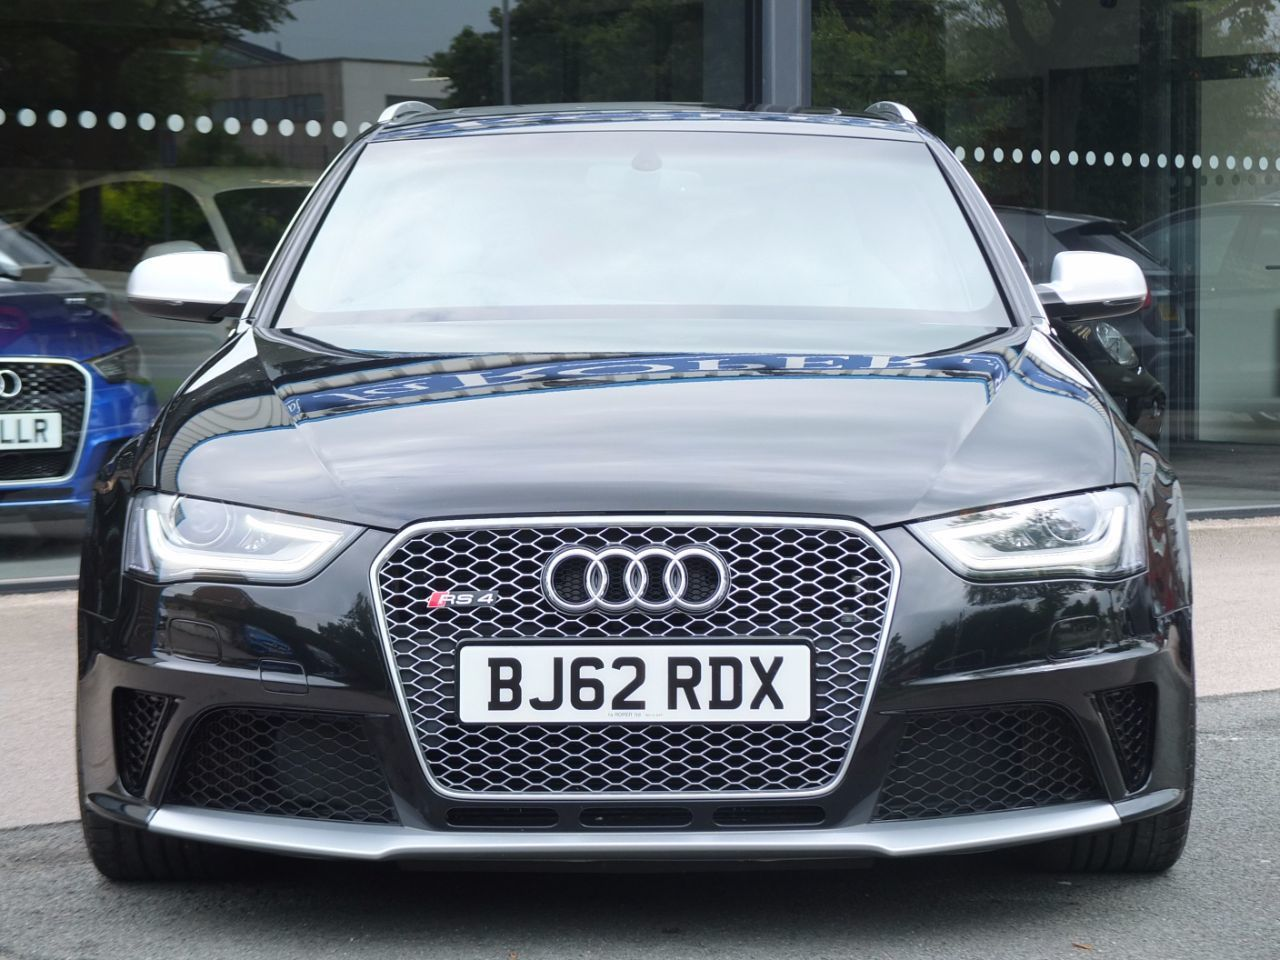 Audi RS4 Avant 4.2 FSI quattro S tronic Estate Petrol Phantom Black Metallic